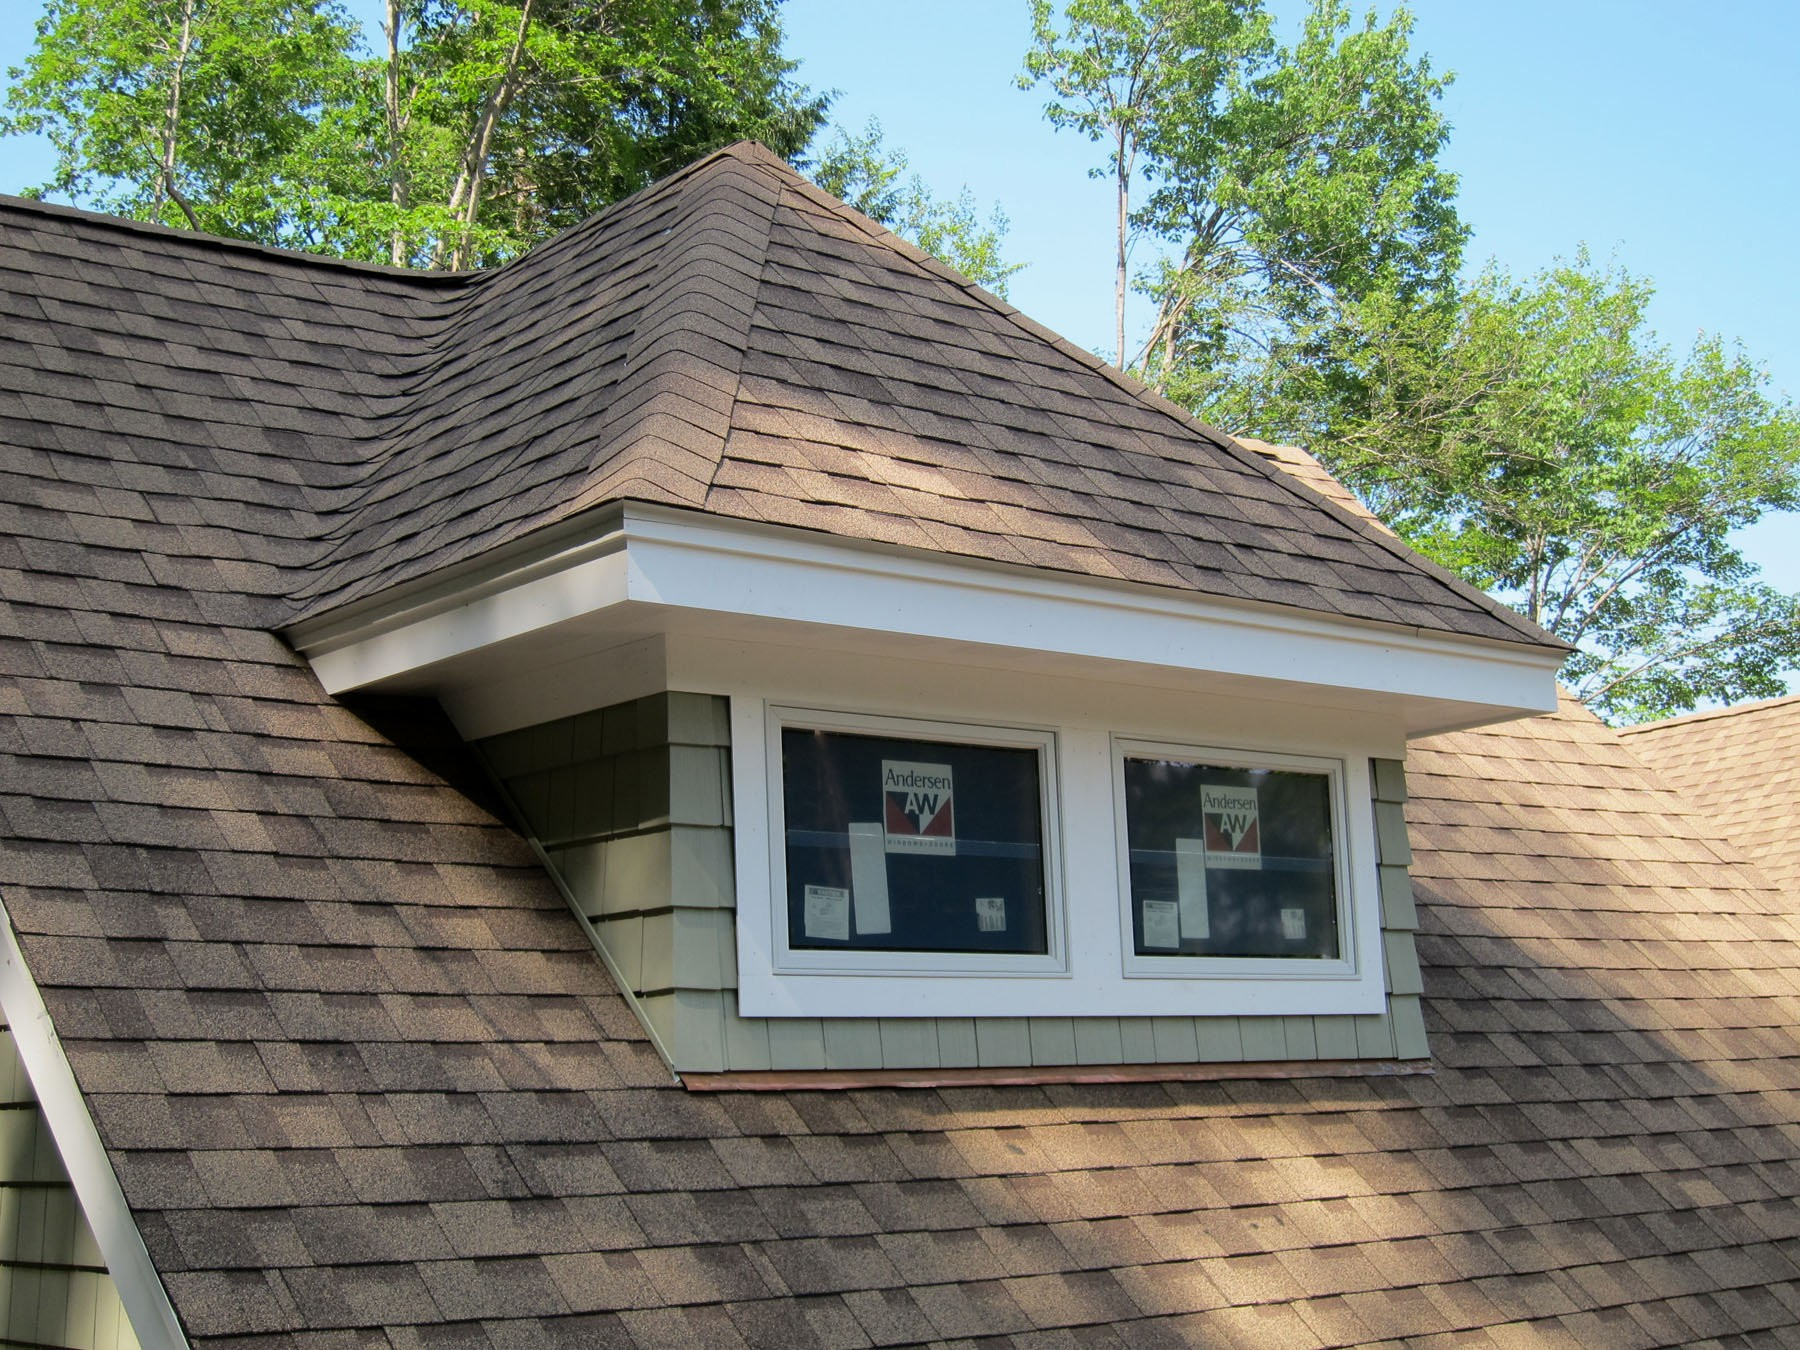 Construction of a roof dormer is not a DIY project - silive.com